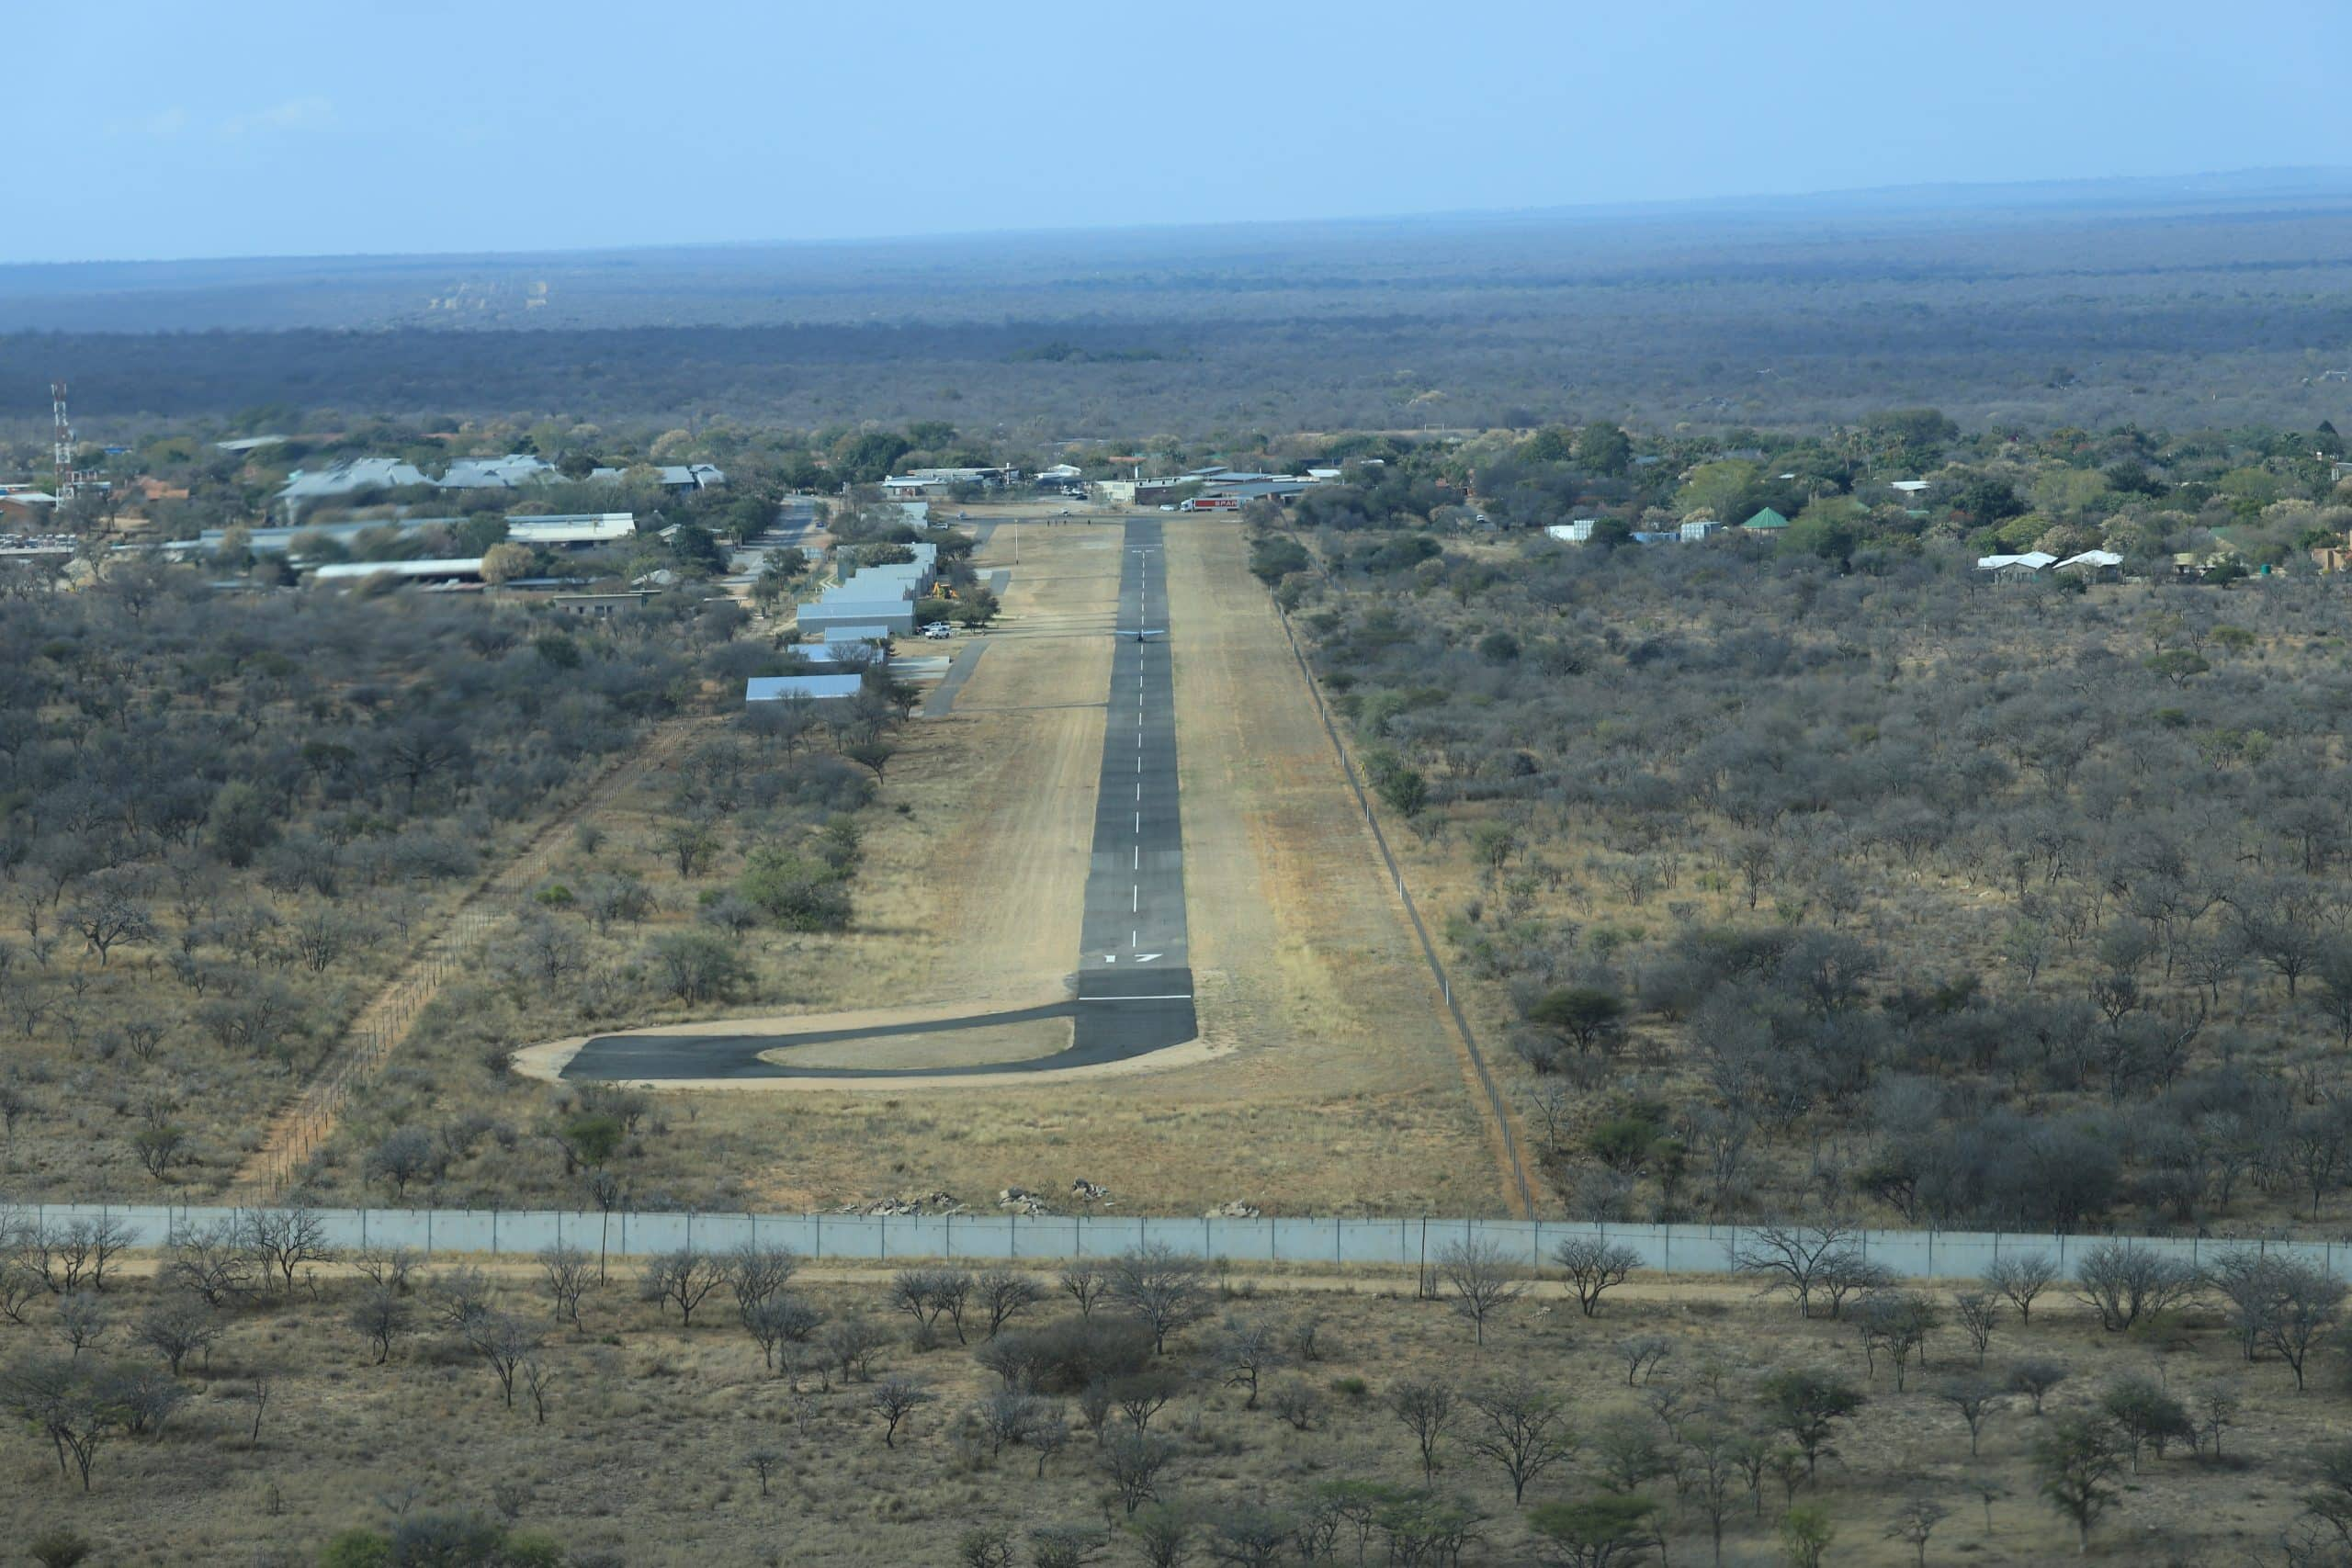 Hoedspruit civil airport